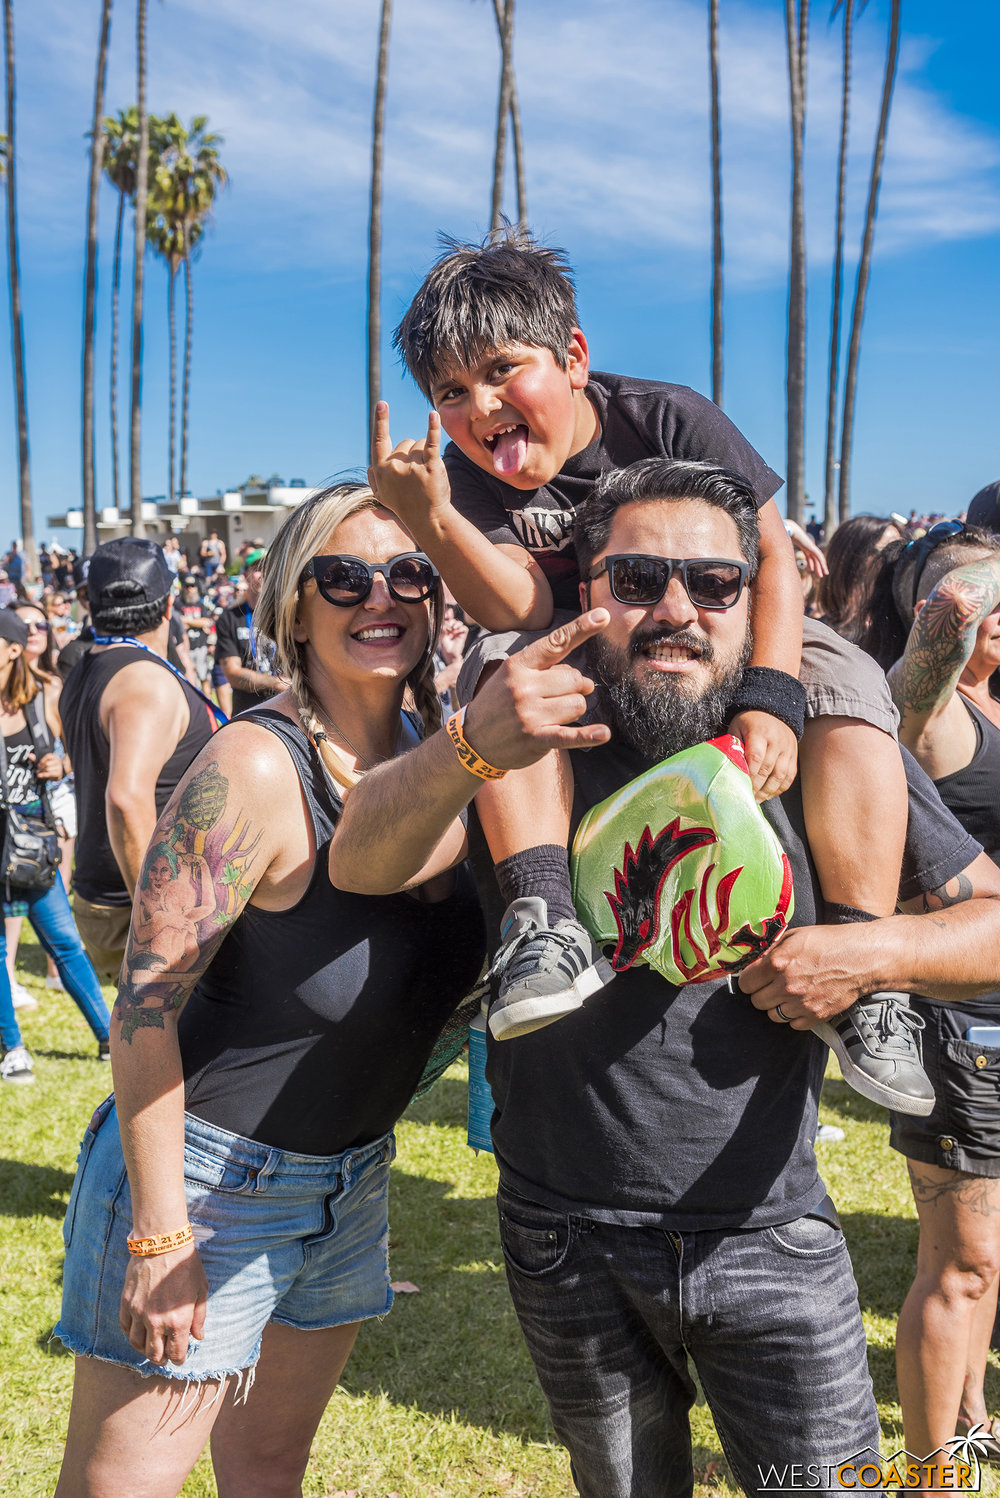 The family that rocks together stays together.